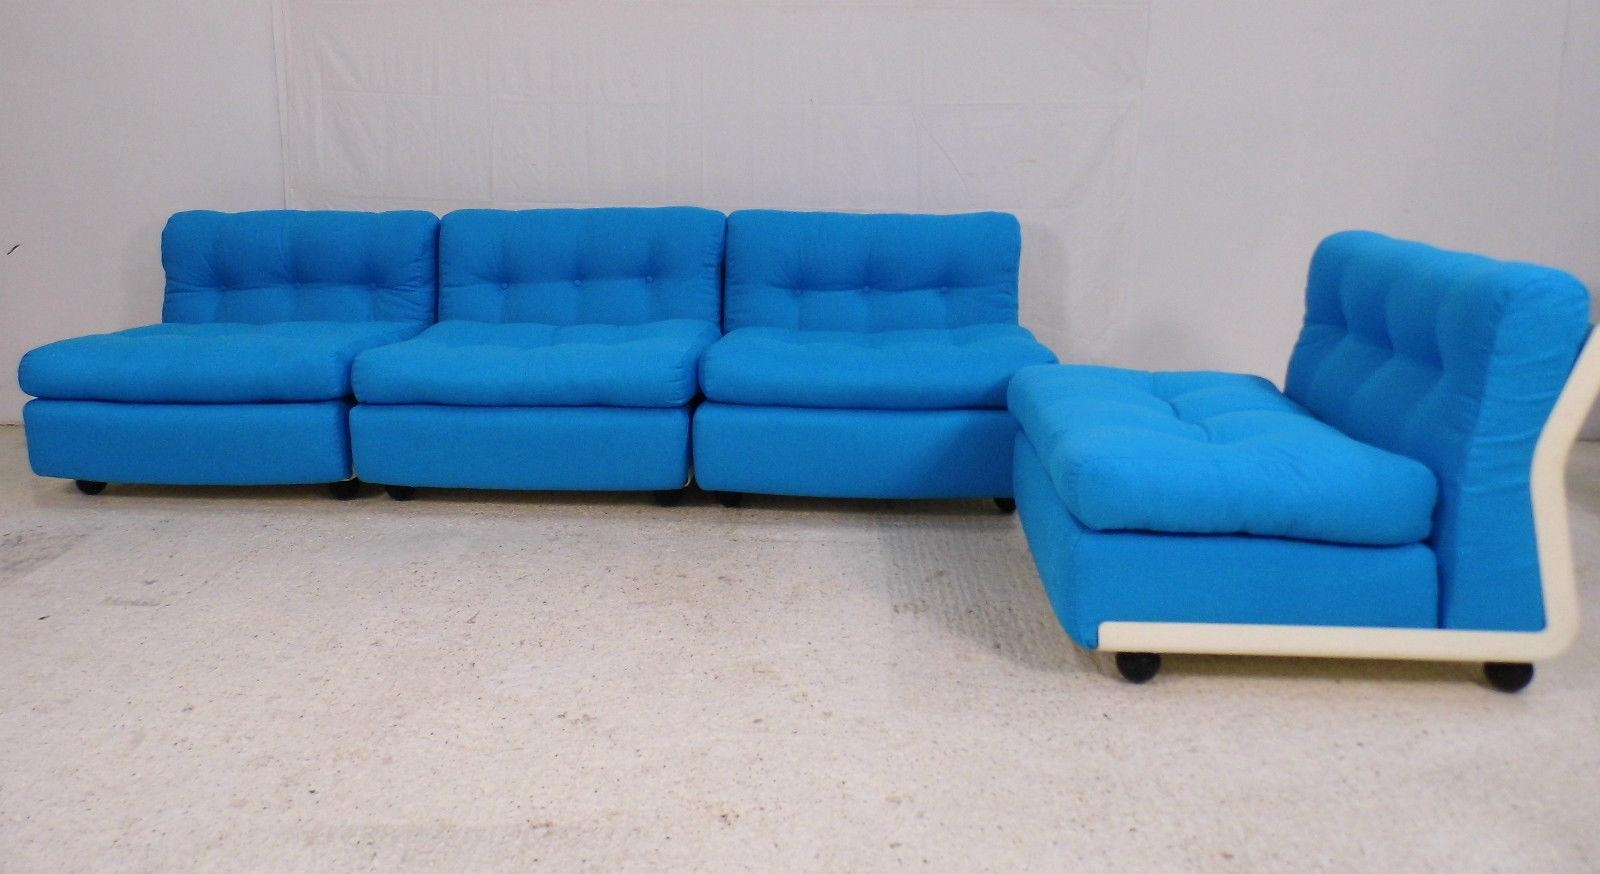 Modular Amanta 4 Seater Sofamario Bellini For C&b Italia, 1973 Intended For Bellini Couches (View 11 of 20)